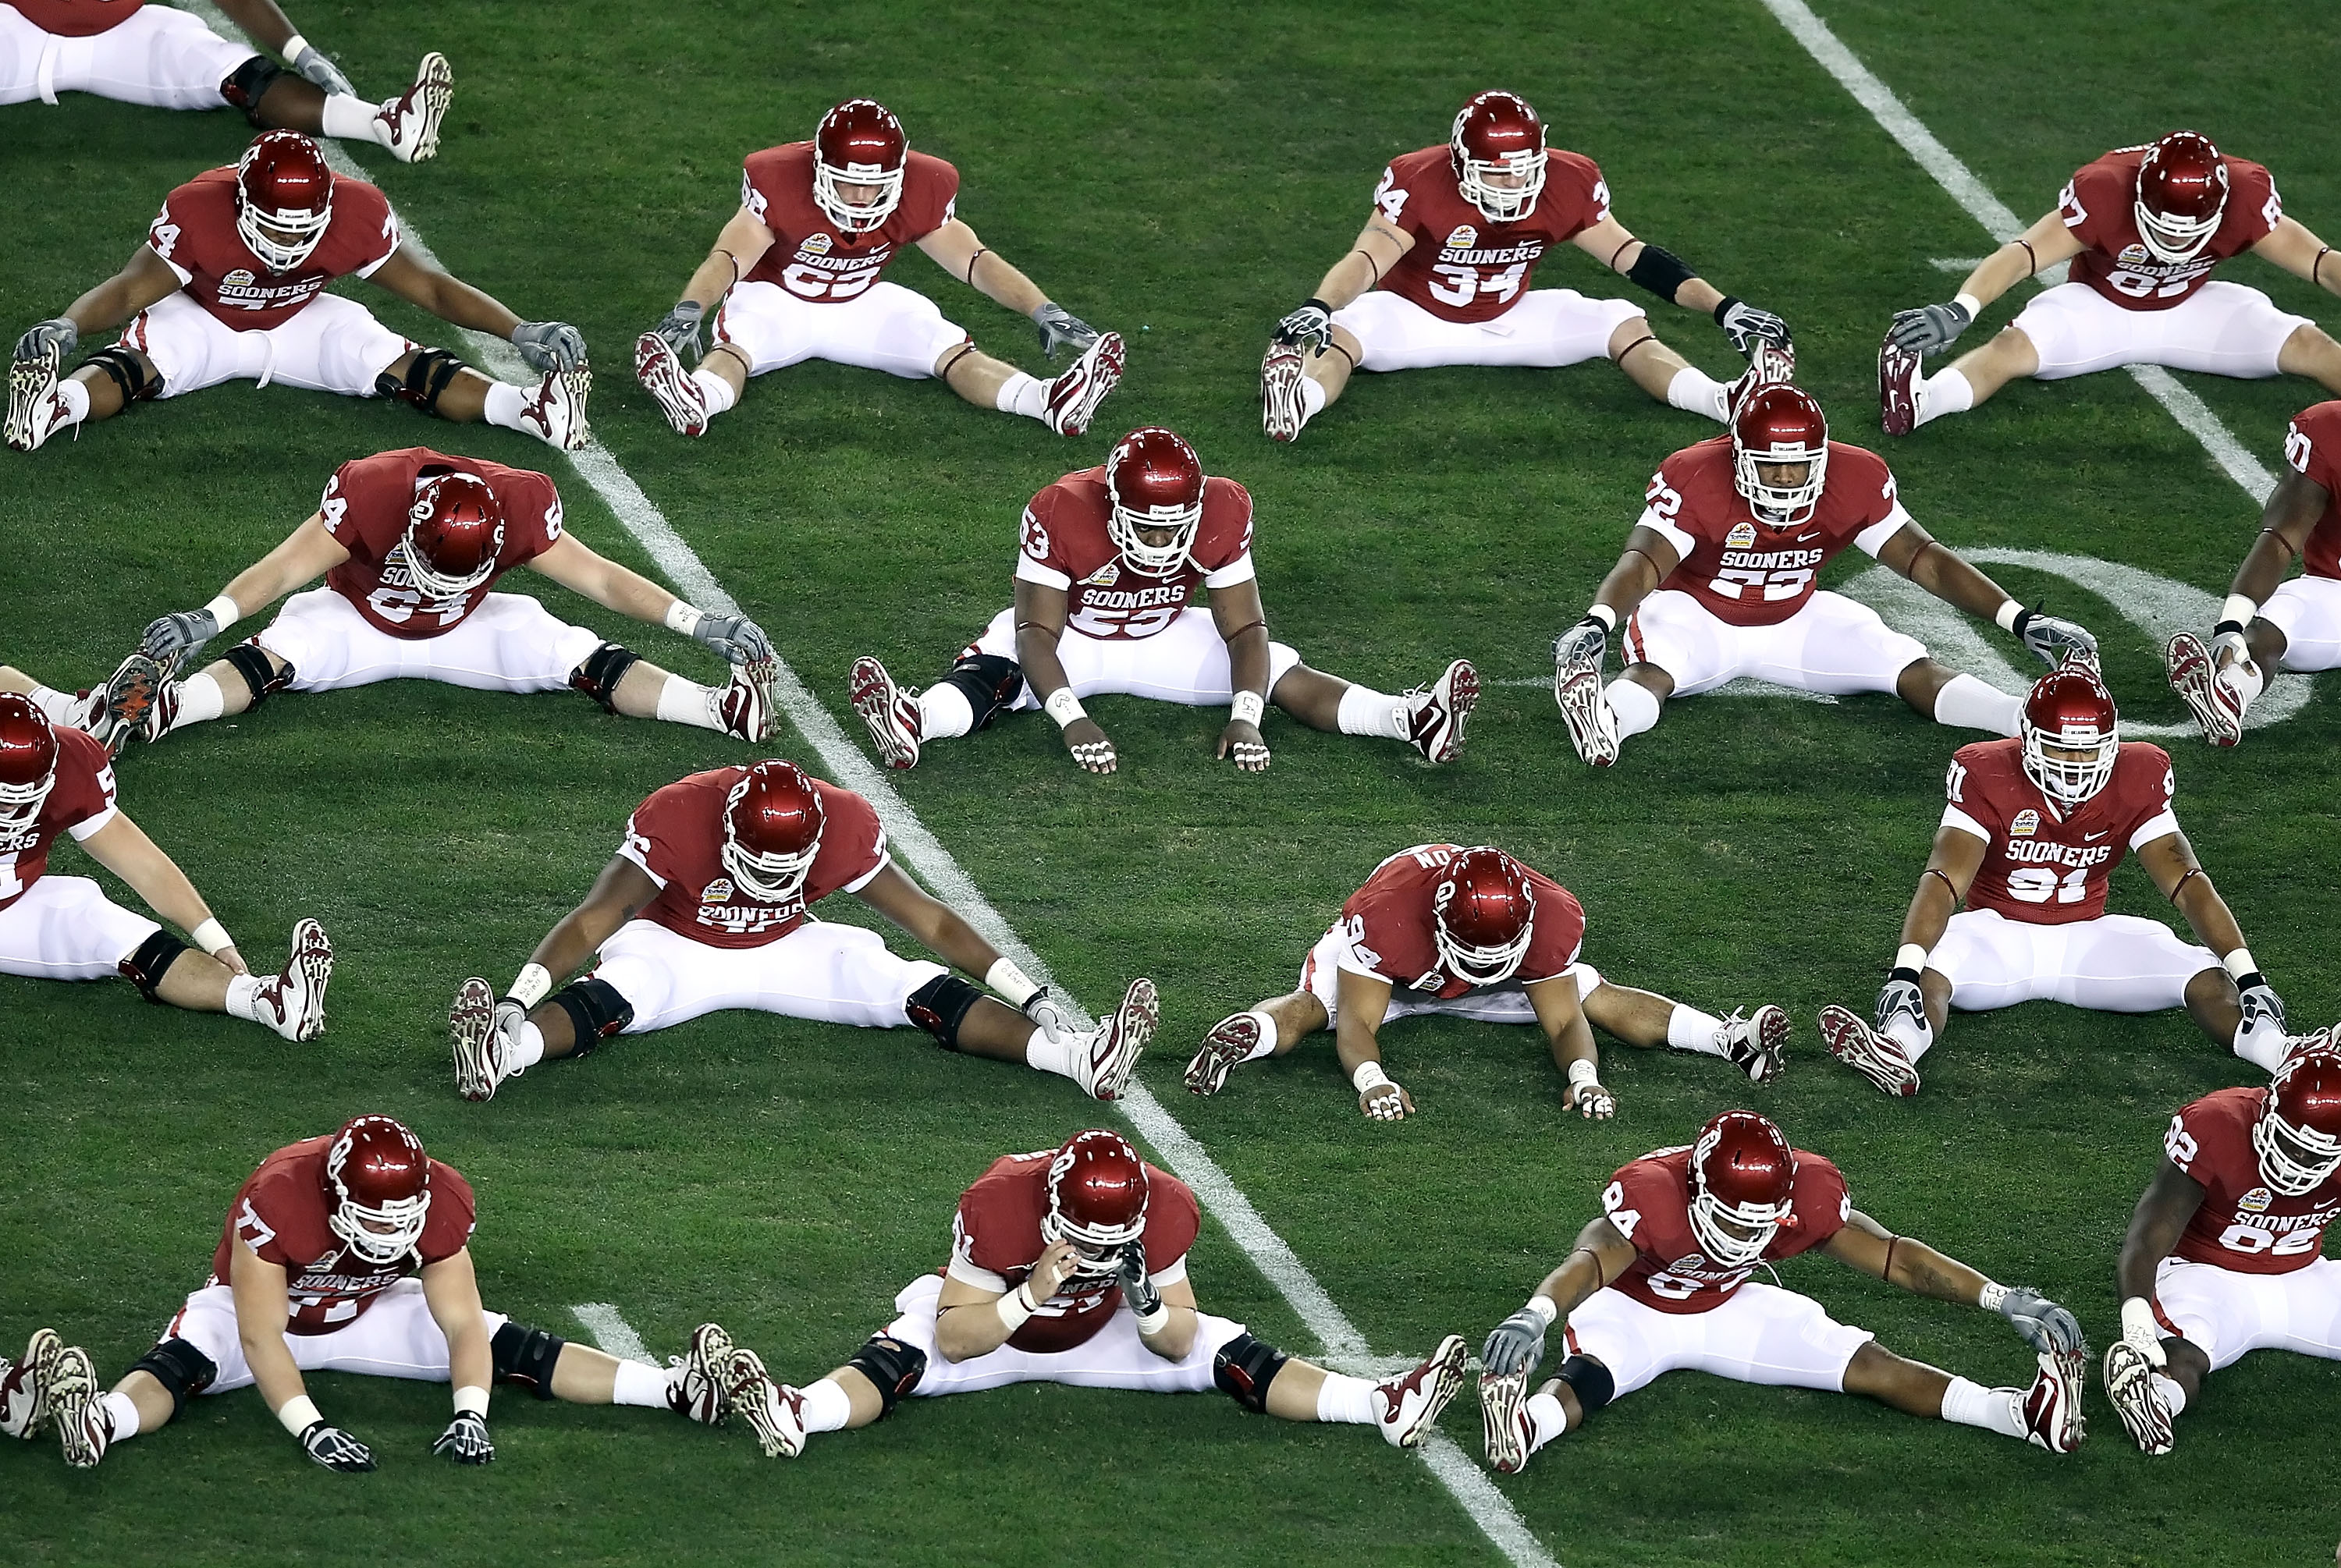 GLENDALE, AZ - JANUARY 01:  The Oklahoma Sooners warm up before the Tostitos Fiesta Bowl against the Connecticut Huskies at the Universtity of Phoenix Stadium on January 1, 2011 in Glendale, Arizona.  (Photo by Christian Petersen/Getty Images)